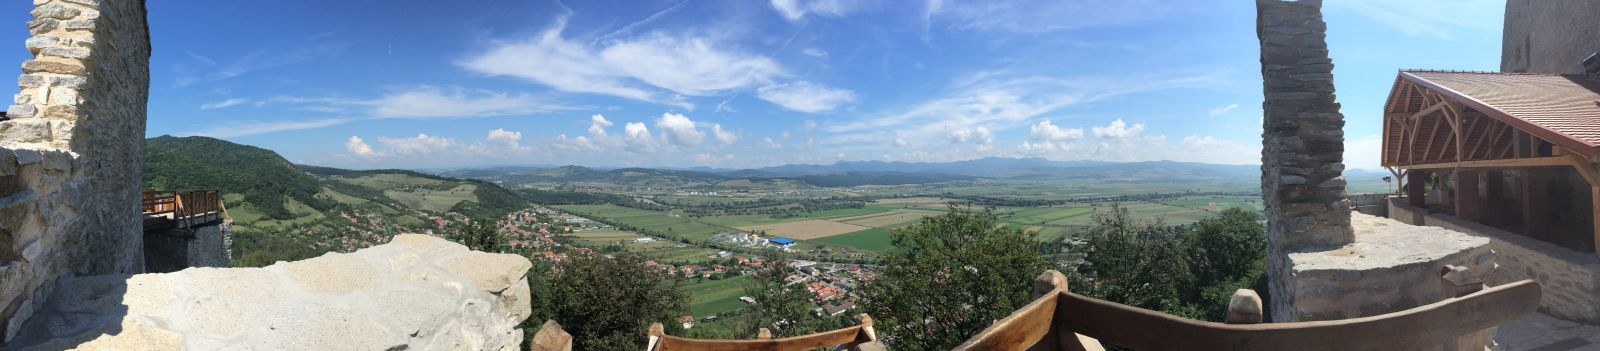 panorama cetate deva 2